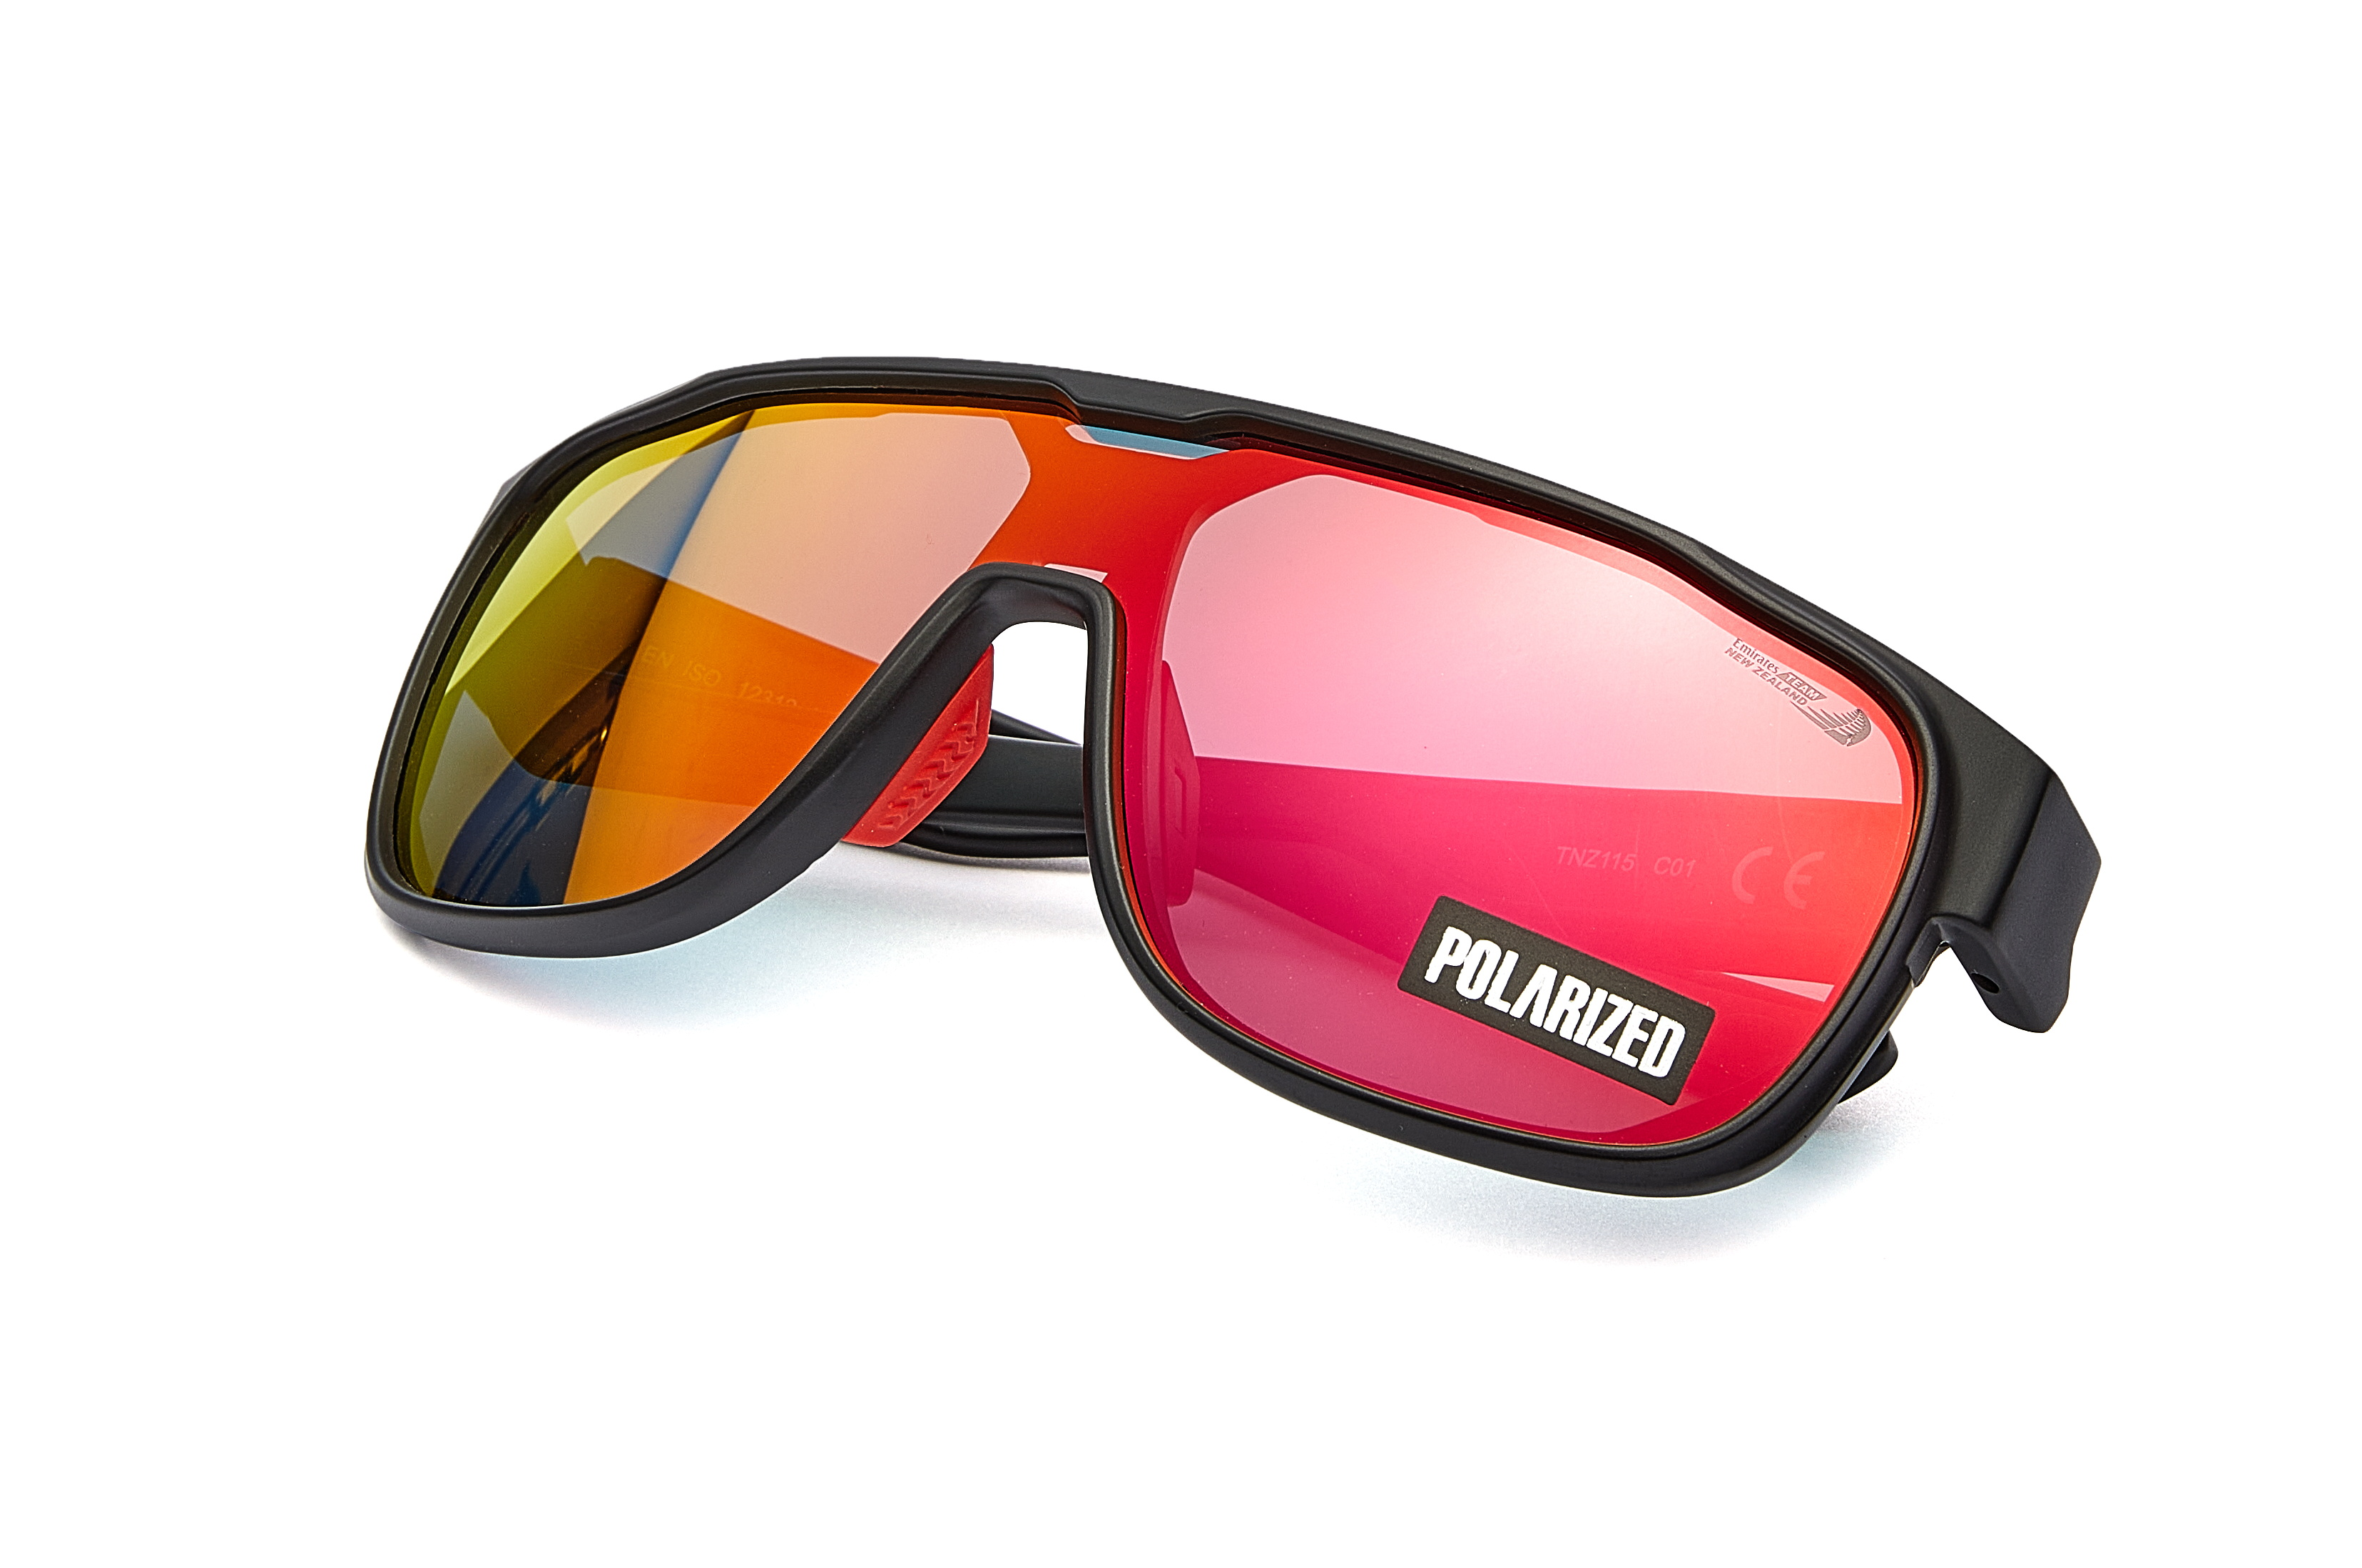 Tnz115 water sports outdoor activities driving Polarized Sunglasses